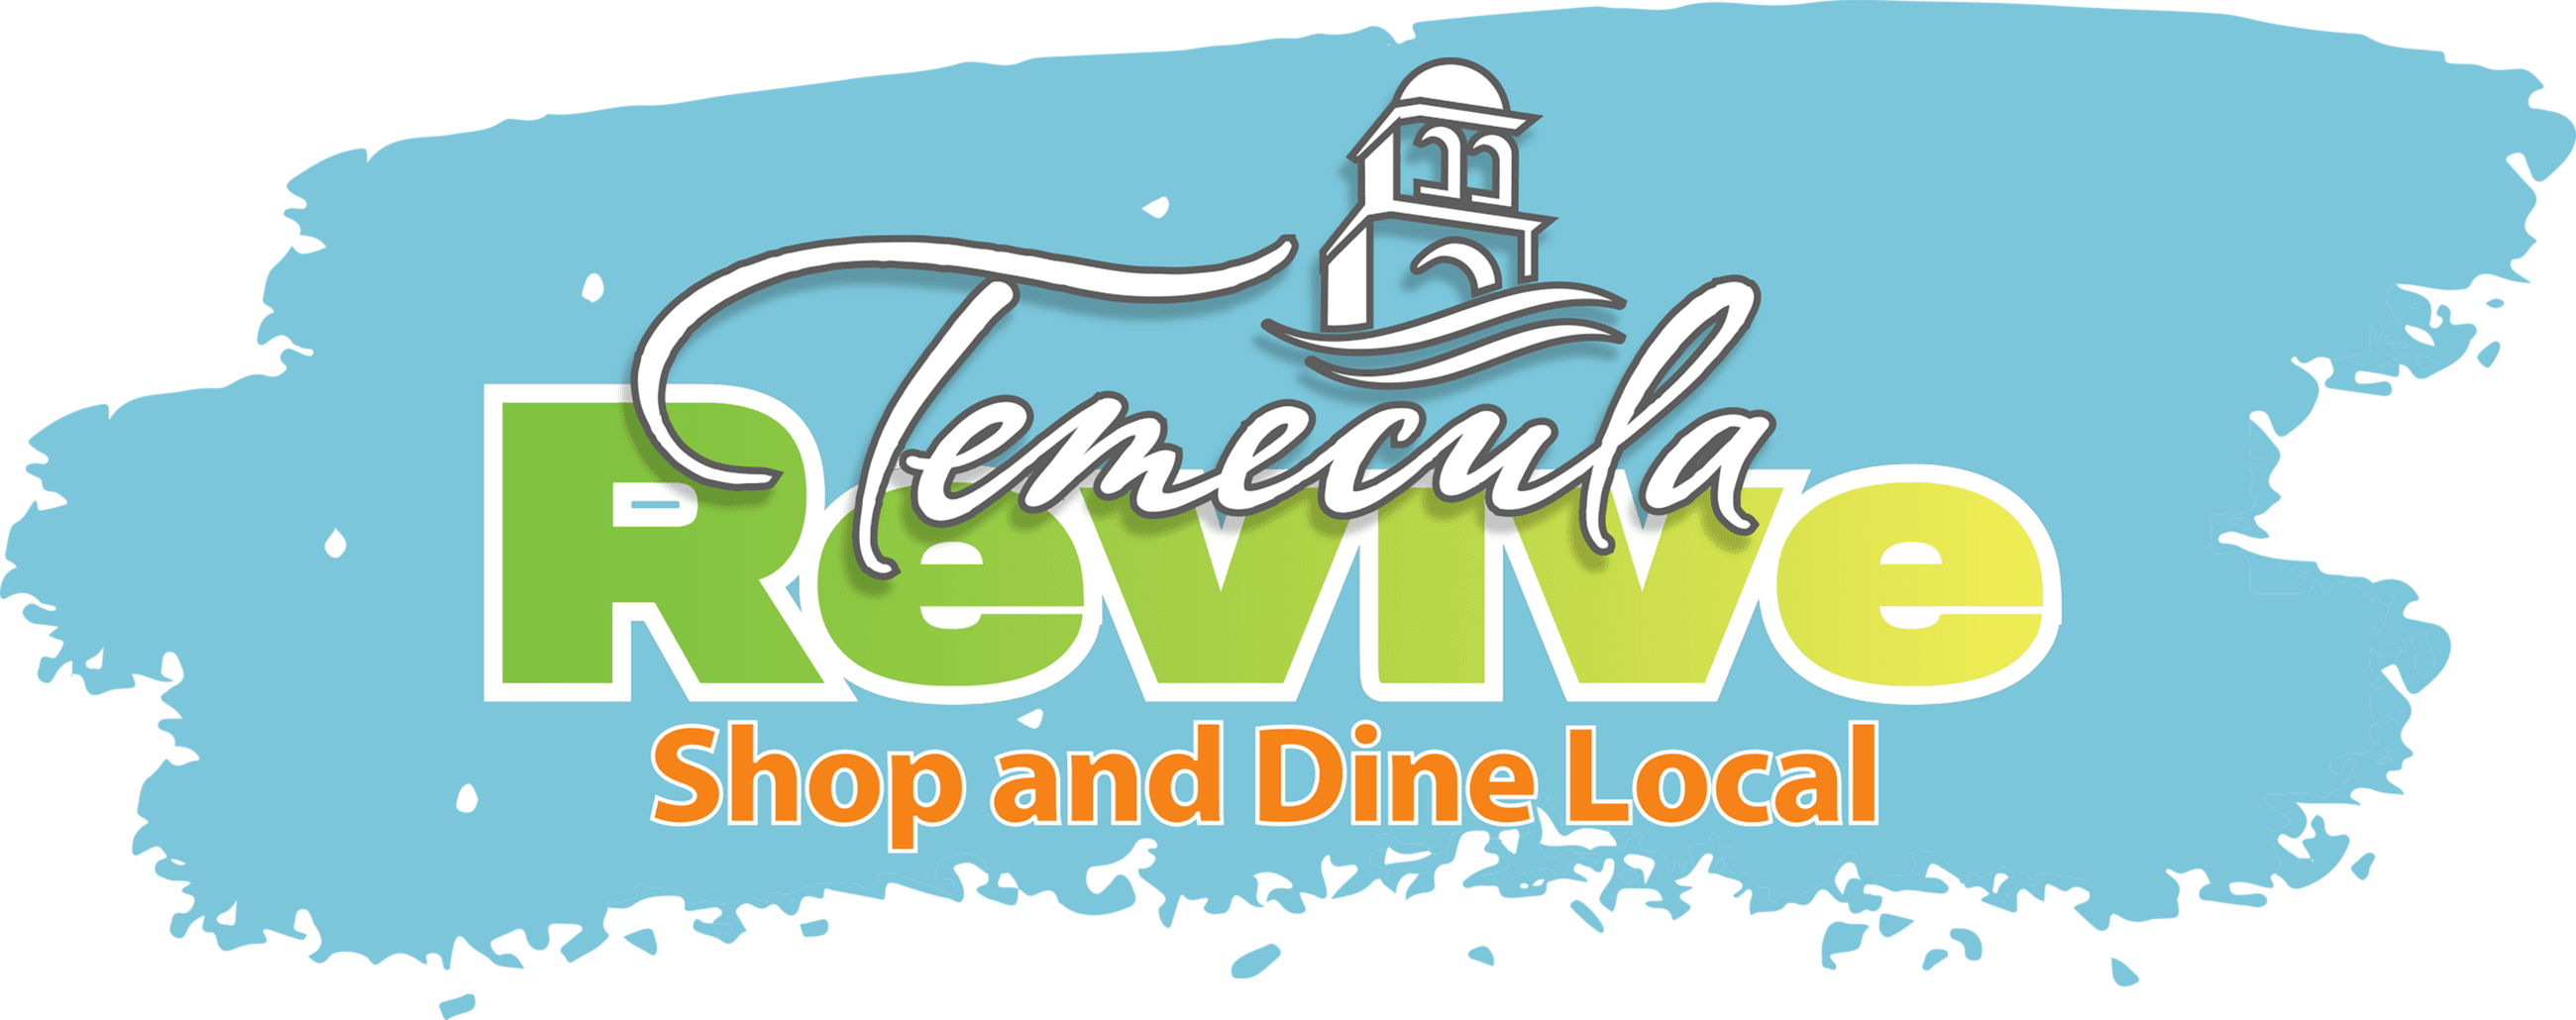 TemeculaRevive_shopanddine_orange